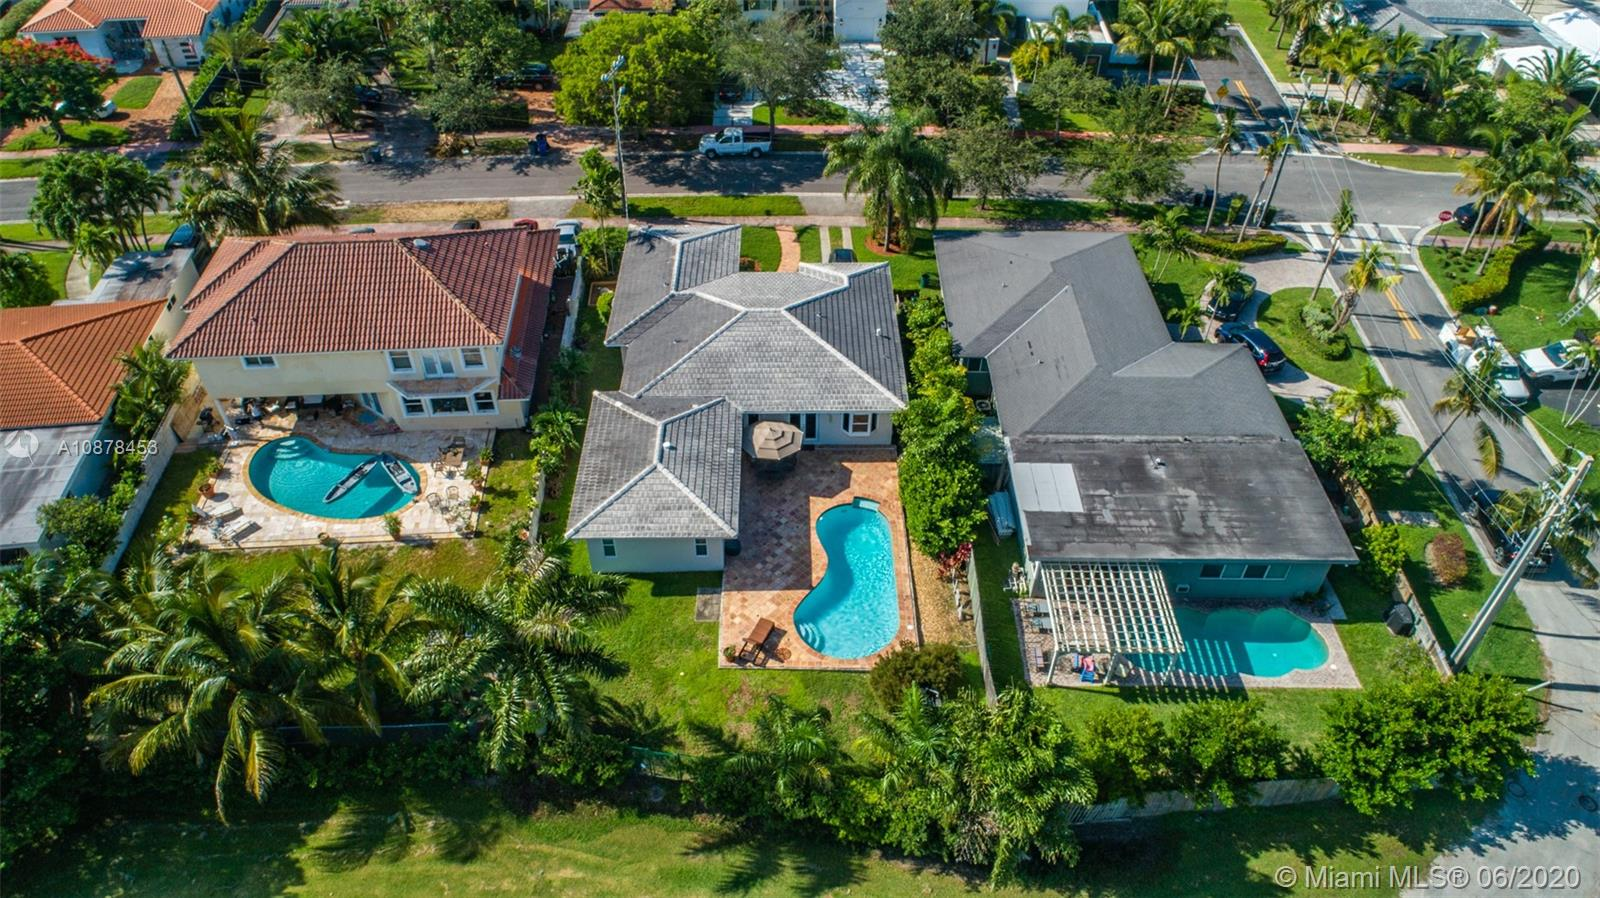 Enjoy living on this guard- gated island with an 18-hole golf course, bayfront tennis courts, sidewalk lined streets and children's playground. This home is over 2,200 SF and is impeccably maintained with tremendous natural light, impact windows and open floorplan ideal for entertaining. The en-suite master bedroom is large and leads out to the pool. This home is extremely private, as the backyard sits on  the lush golf course. Normandy Island is ideally located just minutes from the beaches, upscale shopping, finest restaurants, nightlife, Bal Harbour, South Beach, downtown Miami, airport and houses of worship. It is a must see…